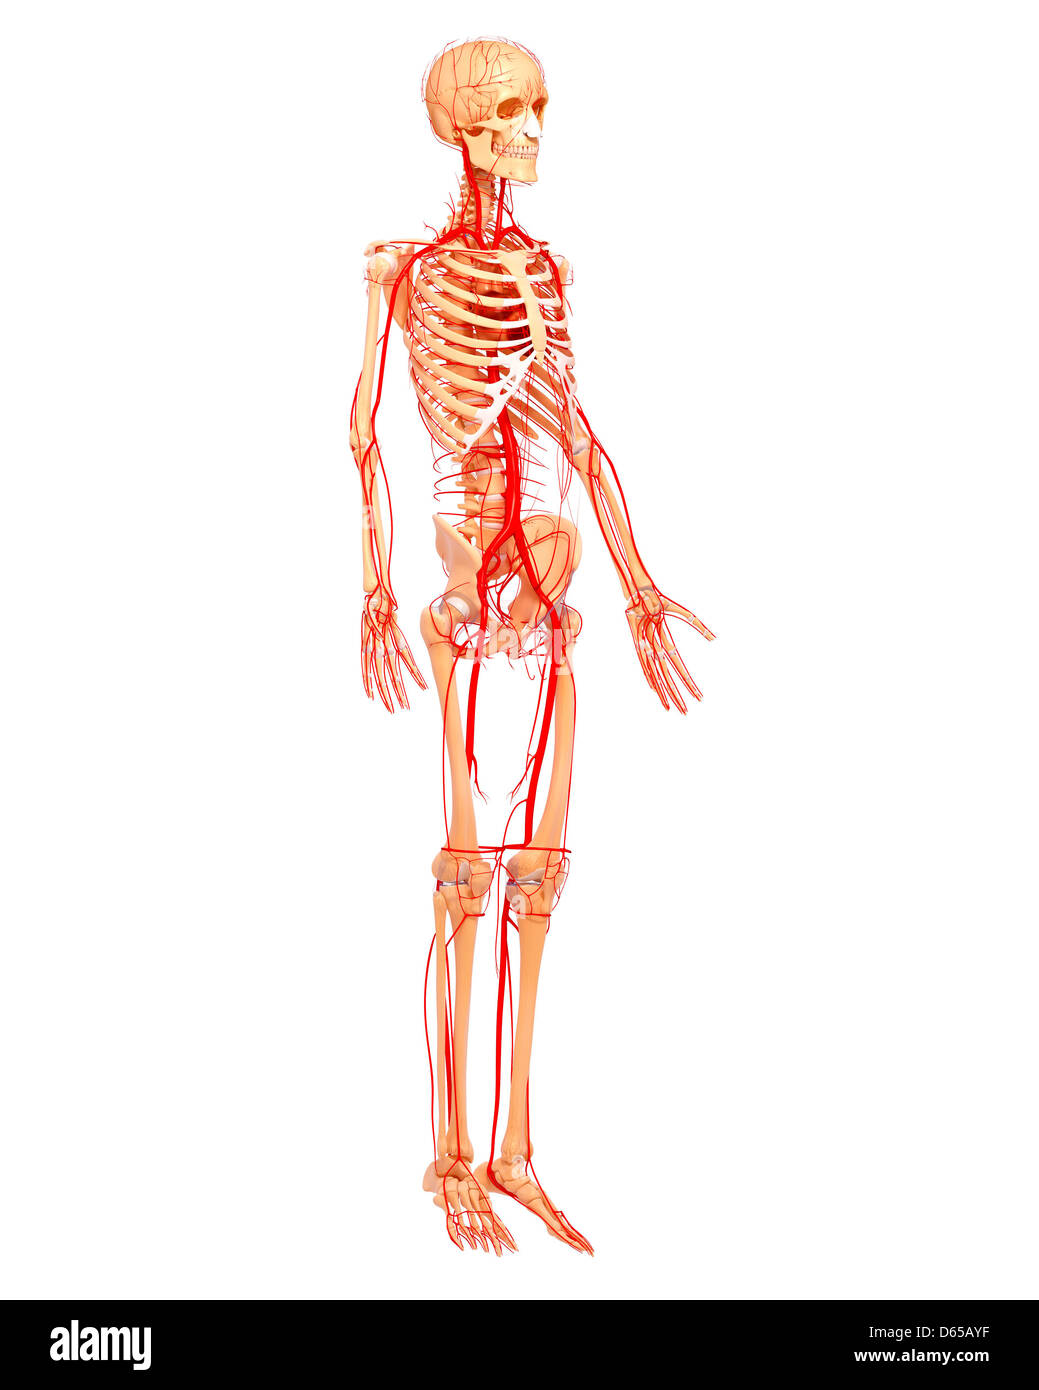 Femoral Artery Stock Photos & Femoral Artery Stock Images - Page 8 ...